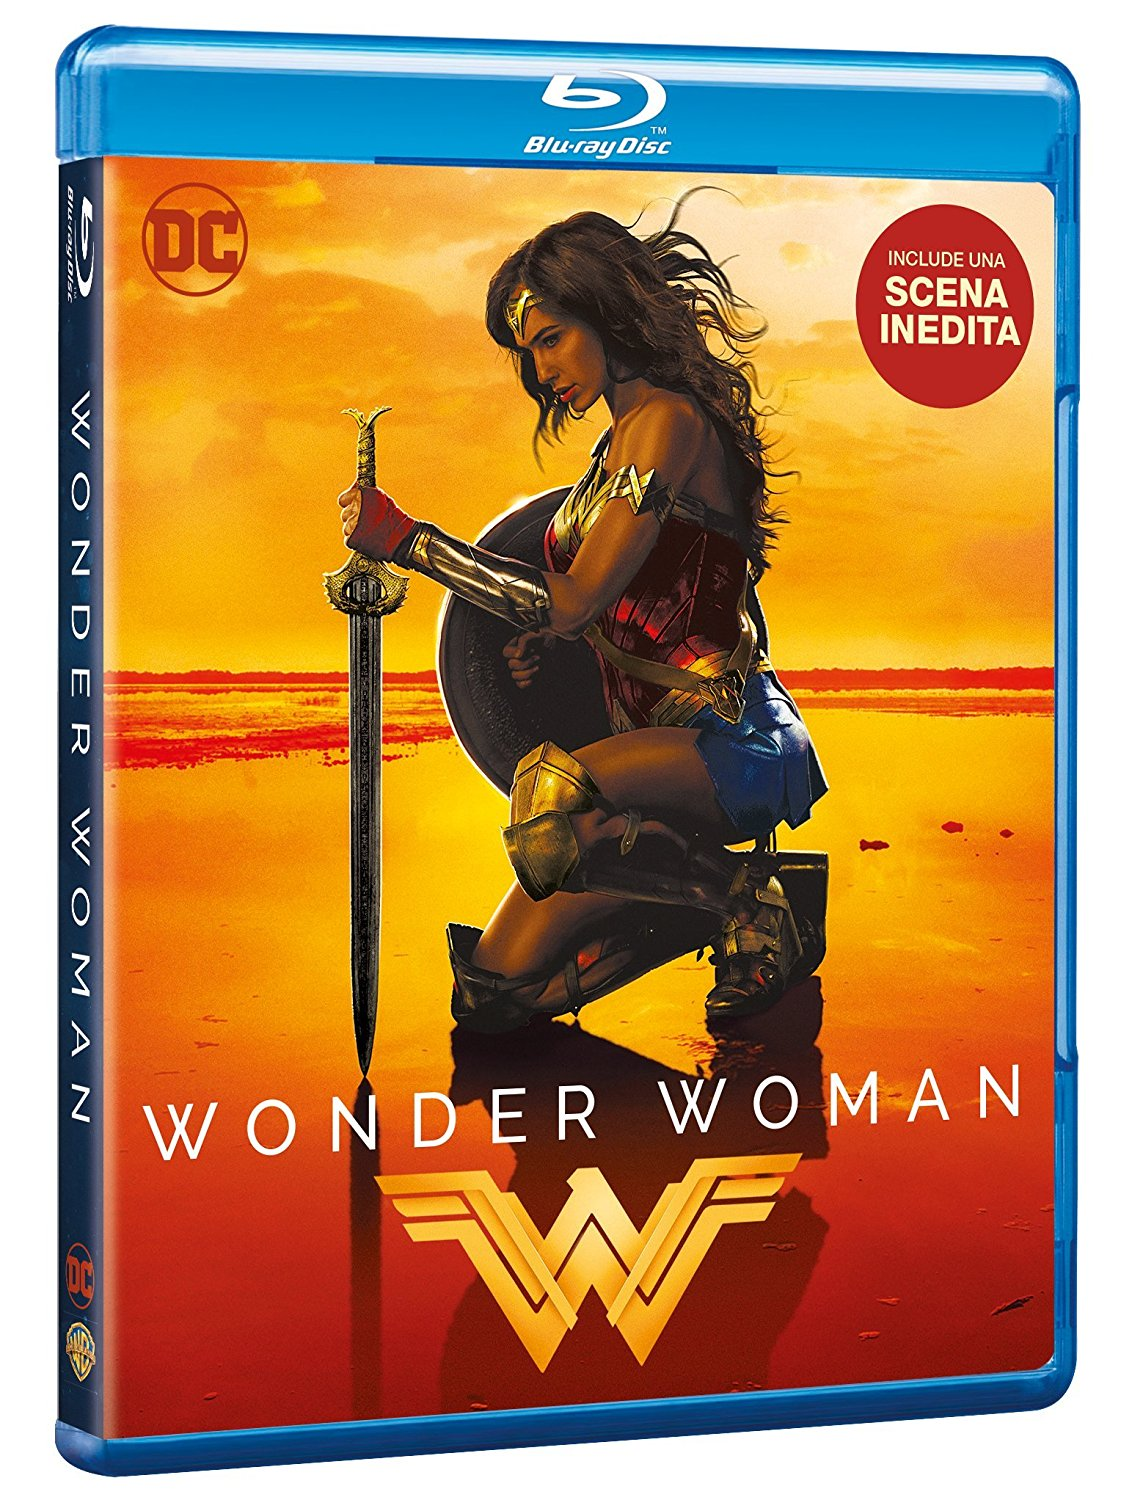 wonderwoman_blu_ray.jpg